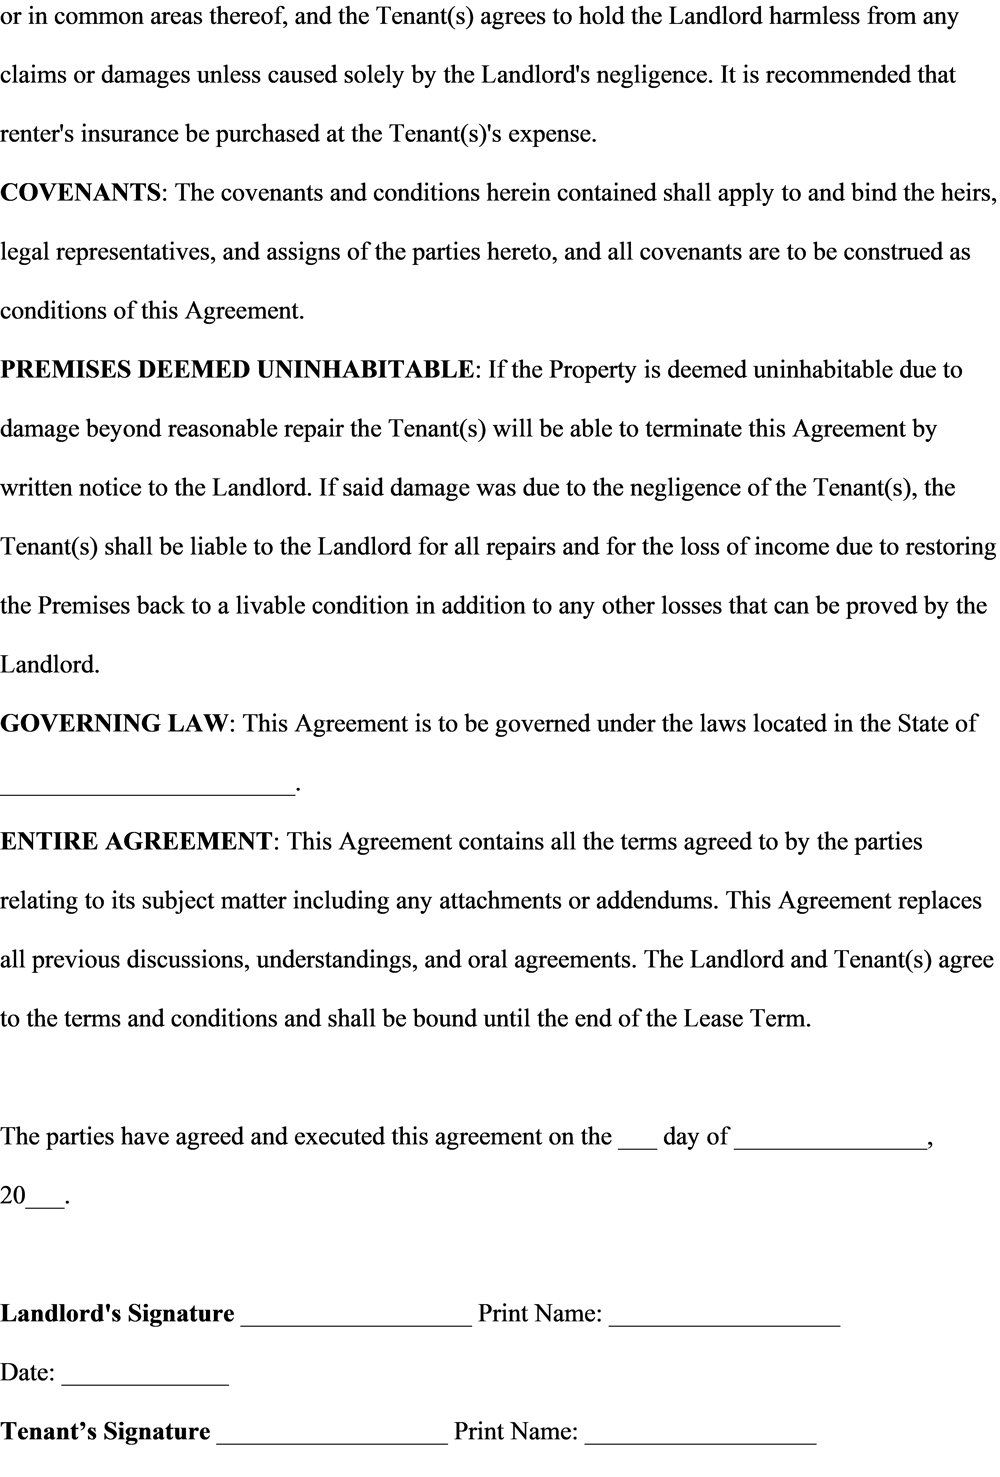 Lease Agreement Assignment - image 8 - student project